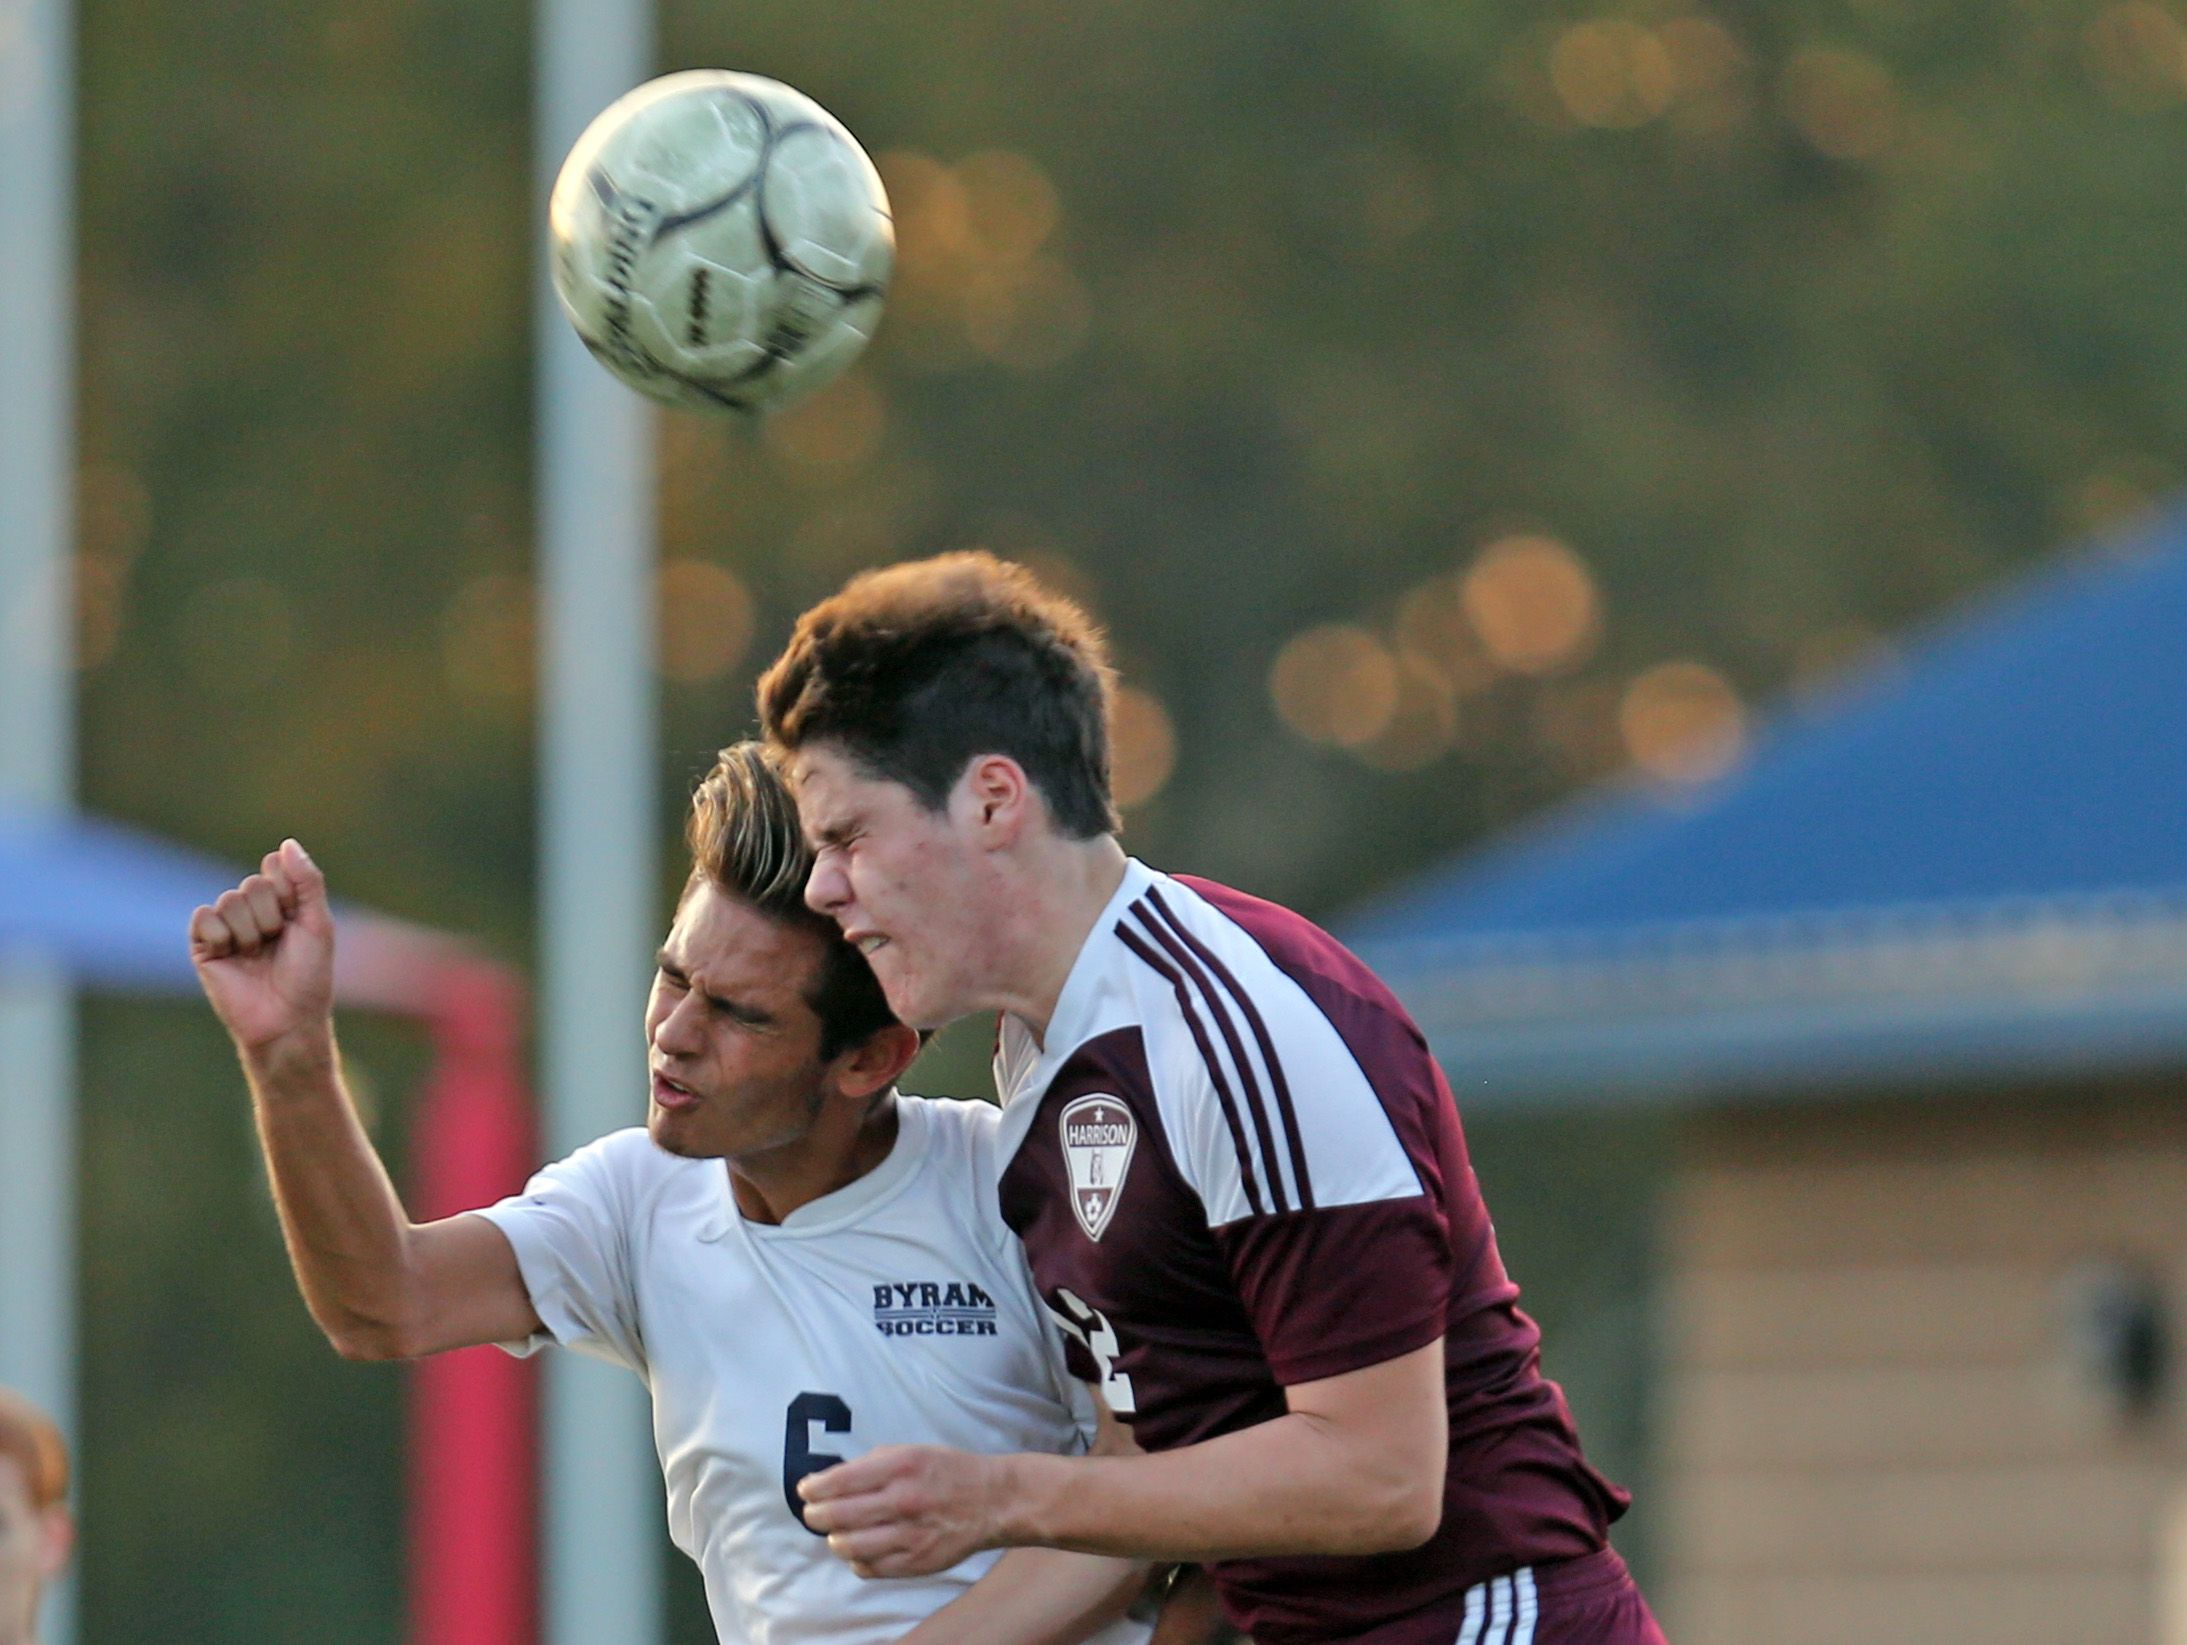 Indra Neil Dan (6) of Byram Hills and Harrison's Sam Glaser (22) battle for control of the ball during boys soccer game at Byram Hills High School in Armonk Oct. 17, 2016. Byram Hills defeats Harrison 3-1.